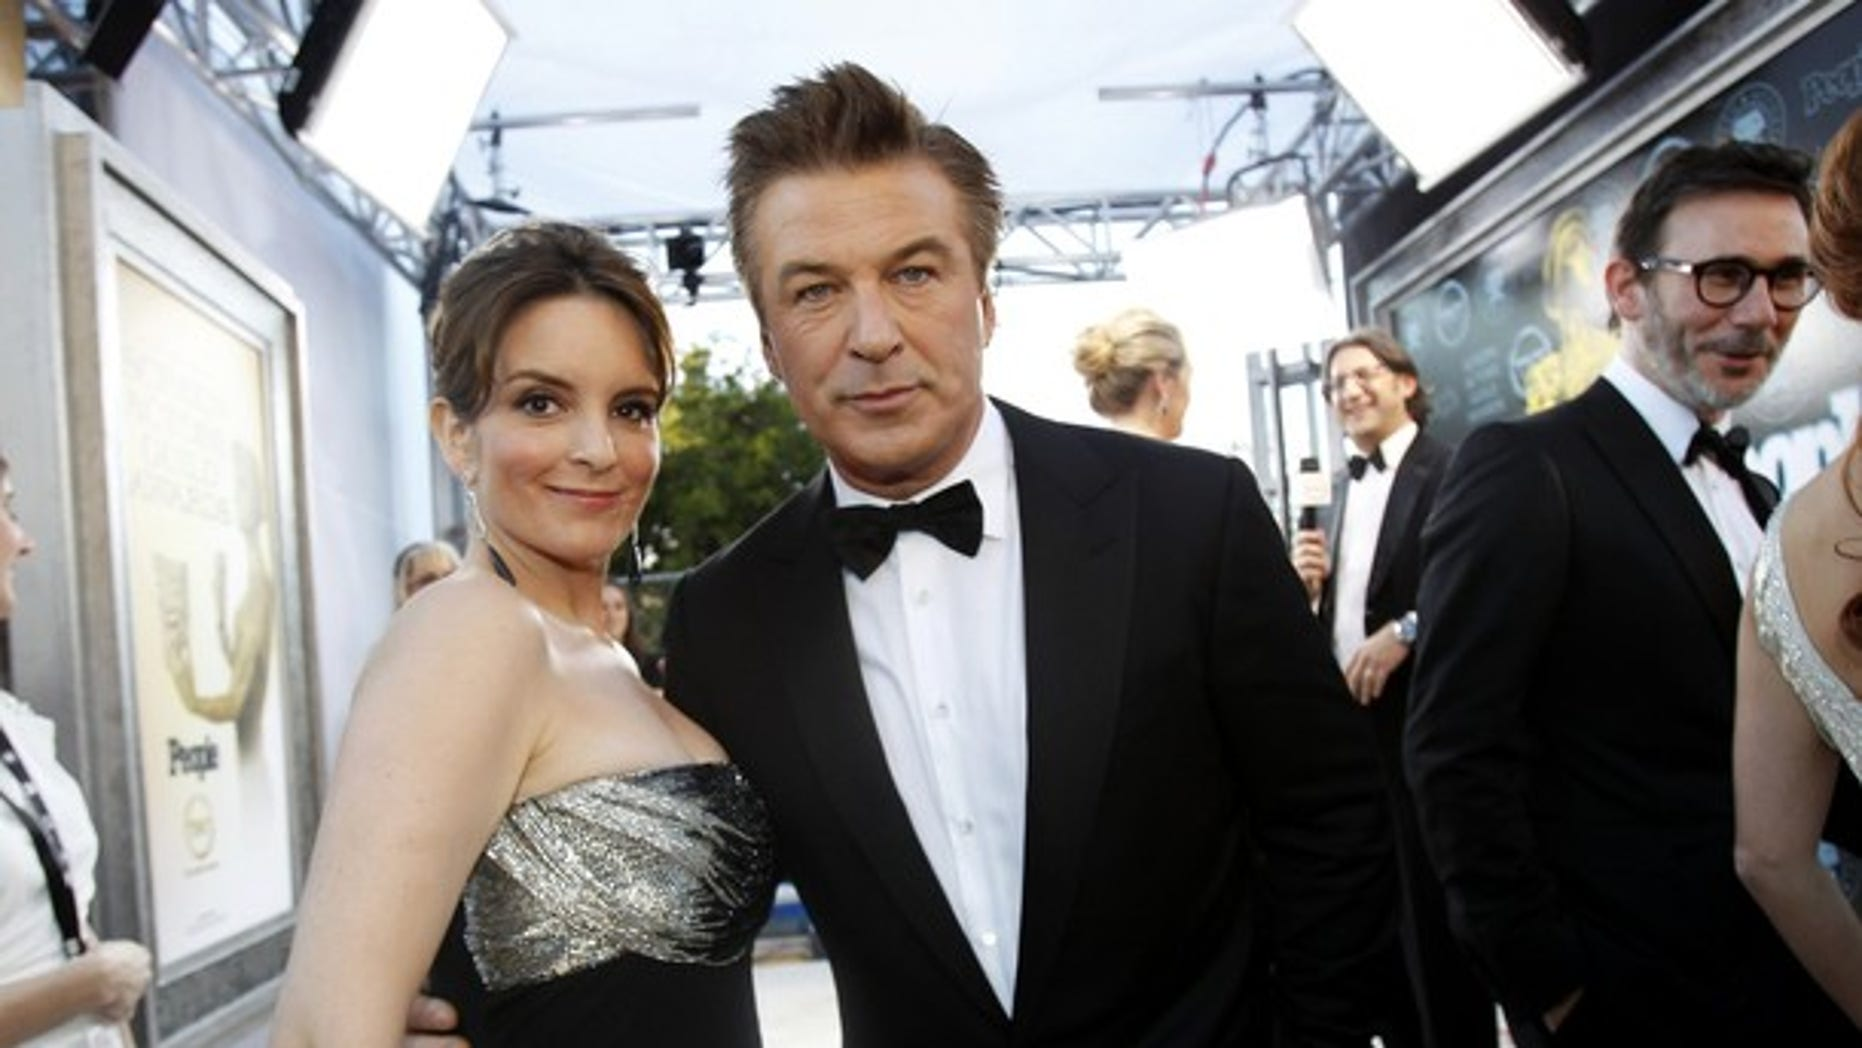 """Actors Tina Fey (L) and Alec Baldwin, from the television series """"30 Rock"""" at the Screen Actor's Guild Awards in January. The show will come to an end after its seventh season."""